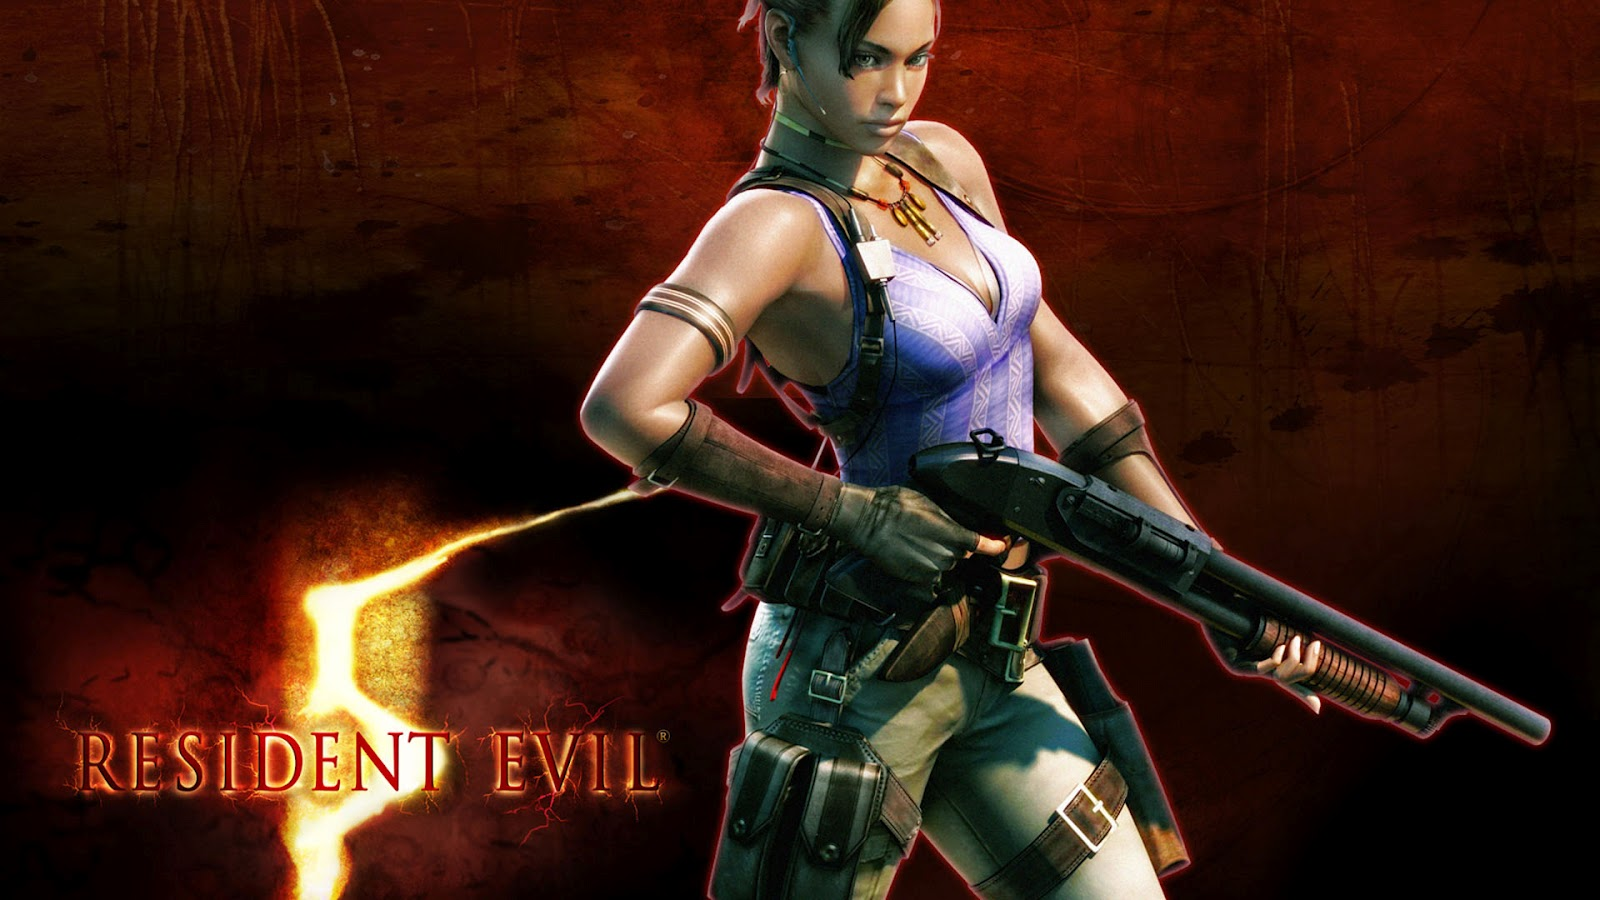 Pic New Posts: Resident Evil 6 Wallpaper Hd 1080p